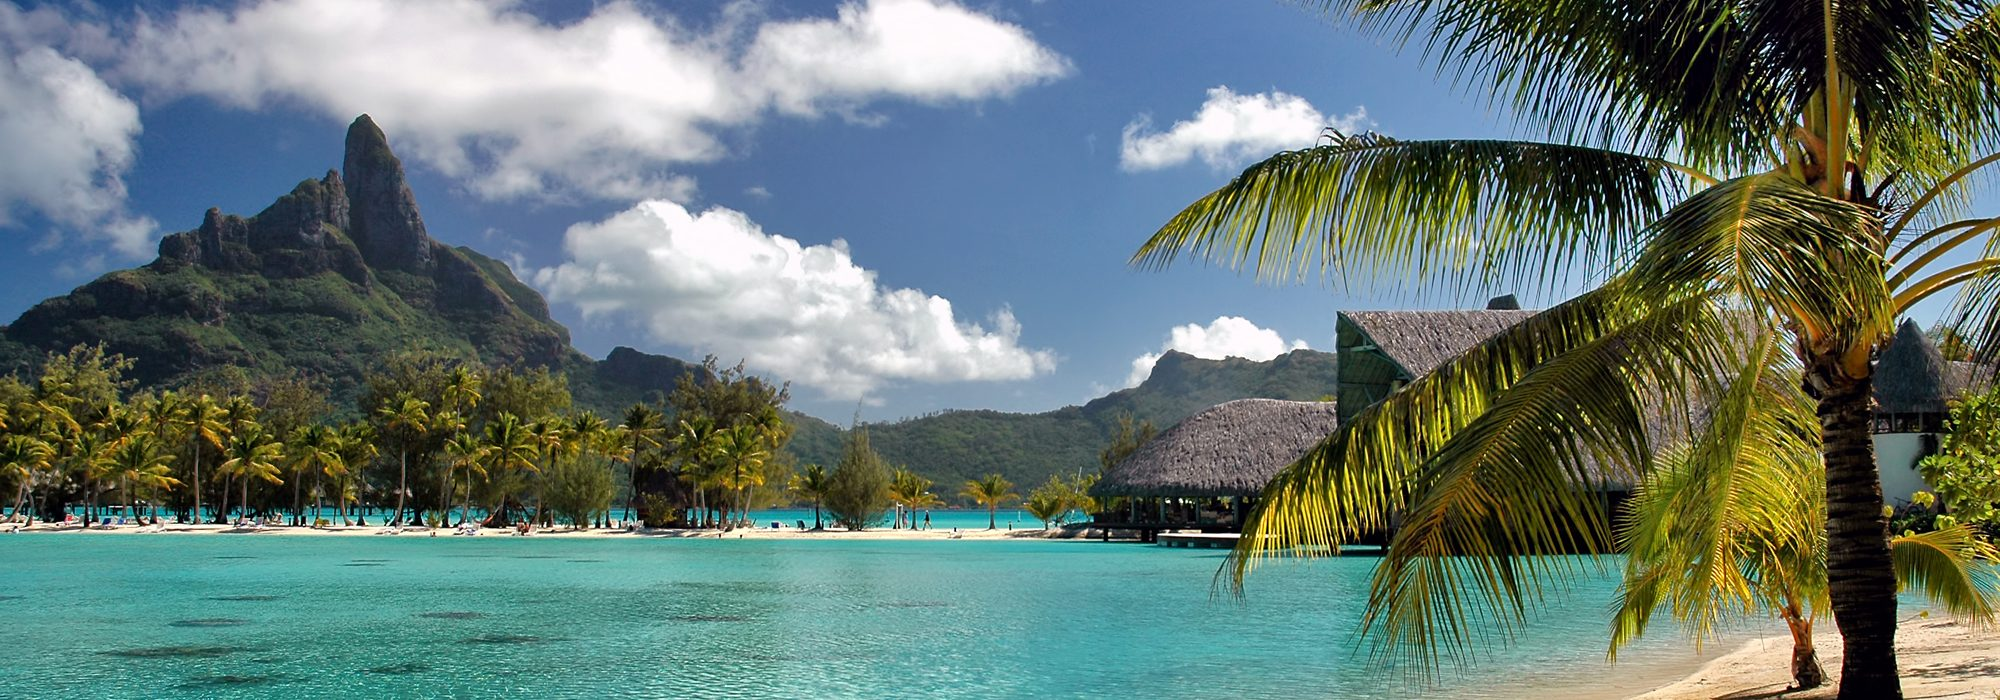 Turquoise water at Bora Bora island beach, Tahiti (French Polynesia)